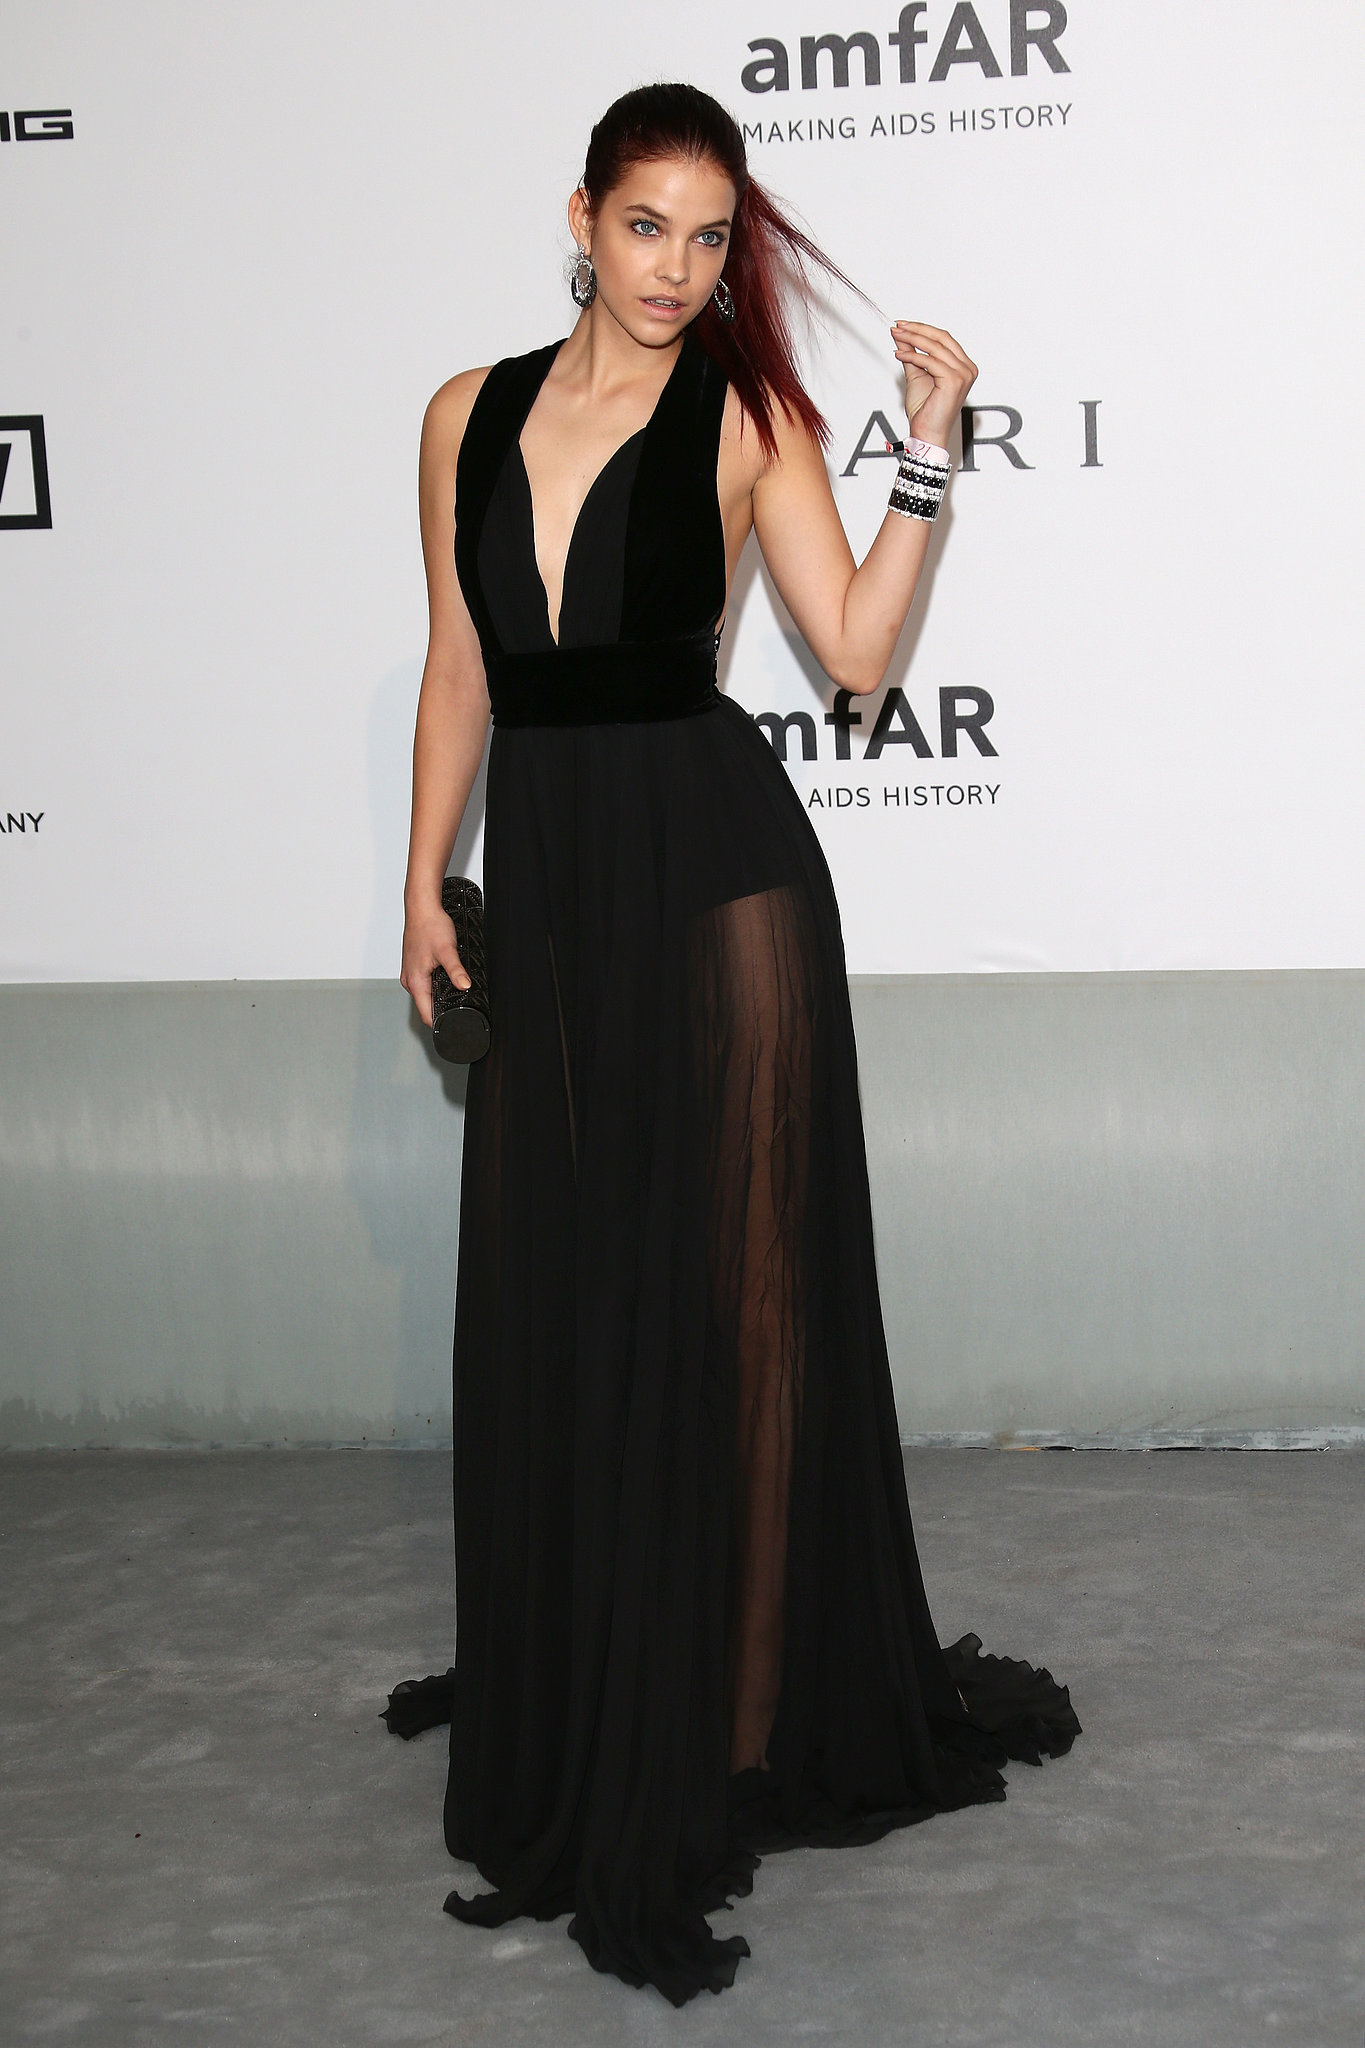 Model Barbara Palvin arrived in a low-cut gown.